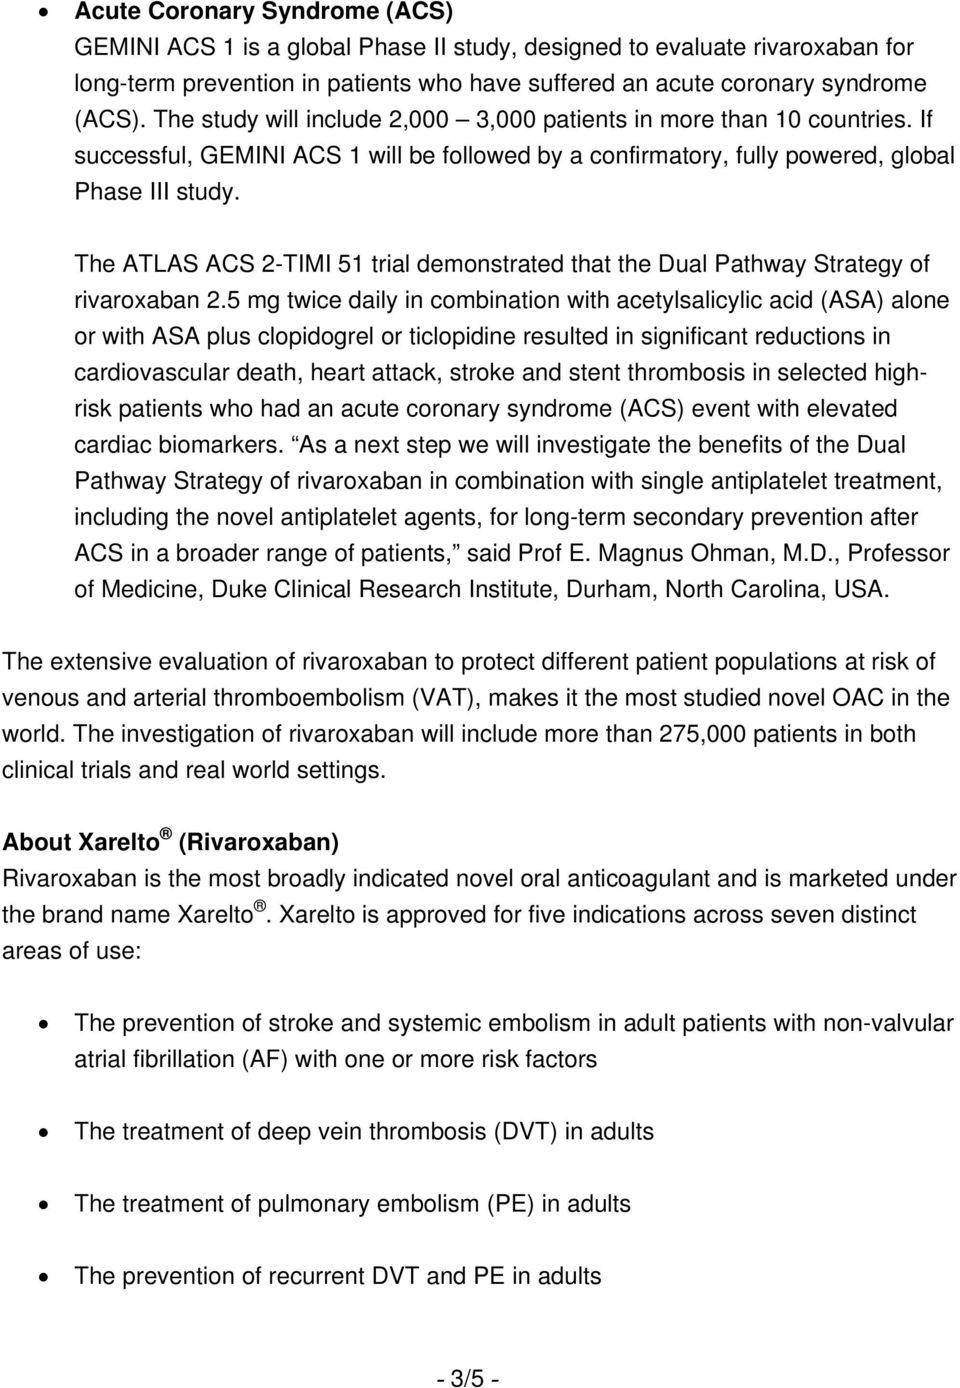 The ATLAS ACS 2-TIMI 51 trial demonstrated that the Dual Pathway Strategy of rivaroxaban 2.